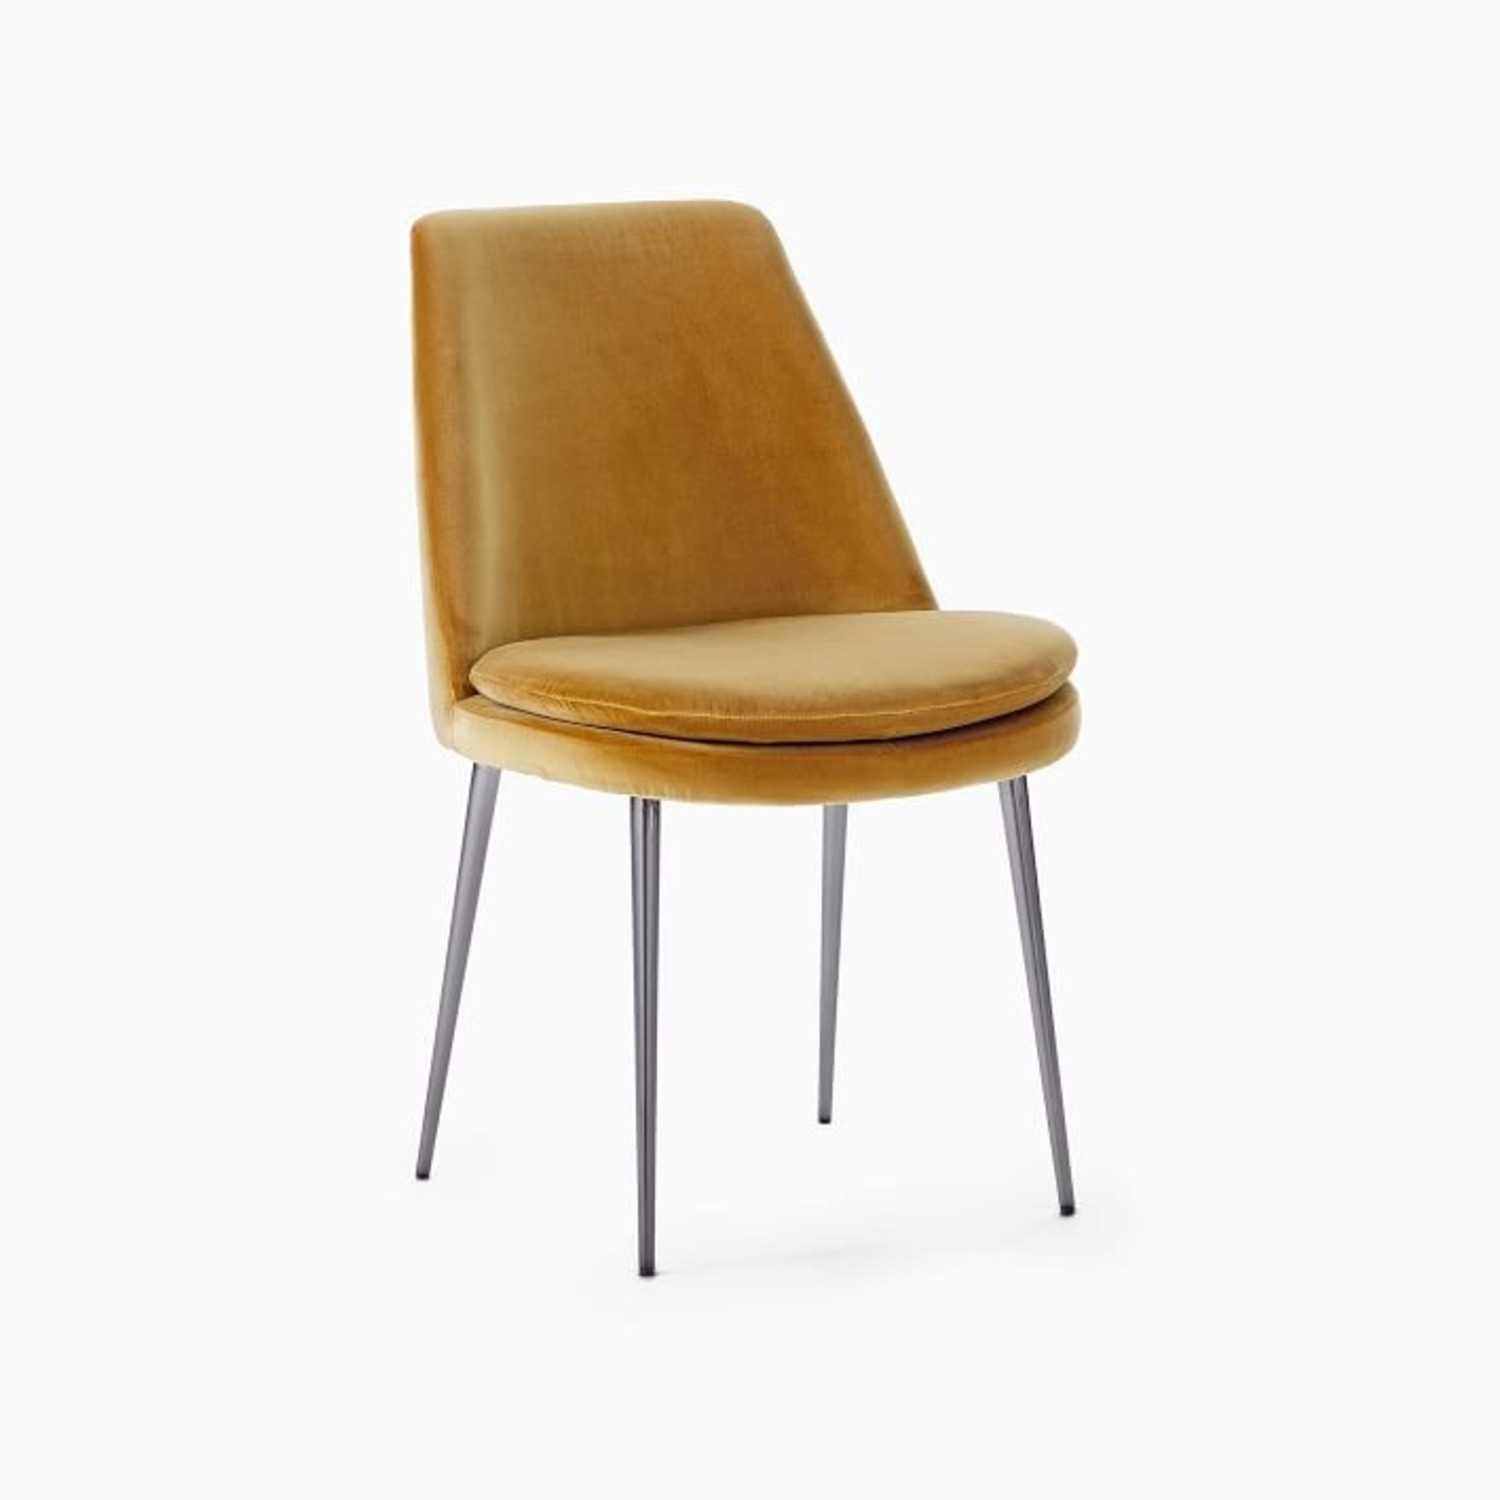 West Elm Finley Low-Back Upholstered Dining Chair - image-1